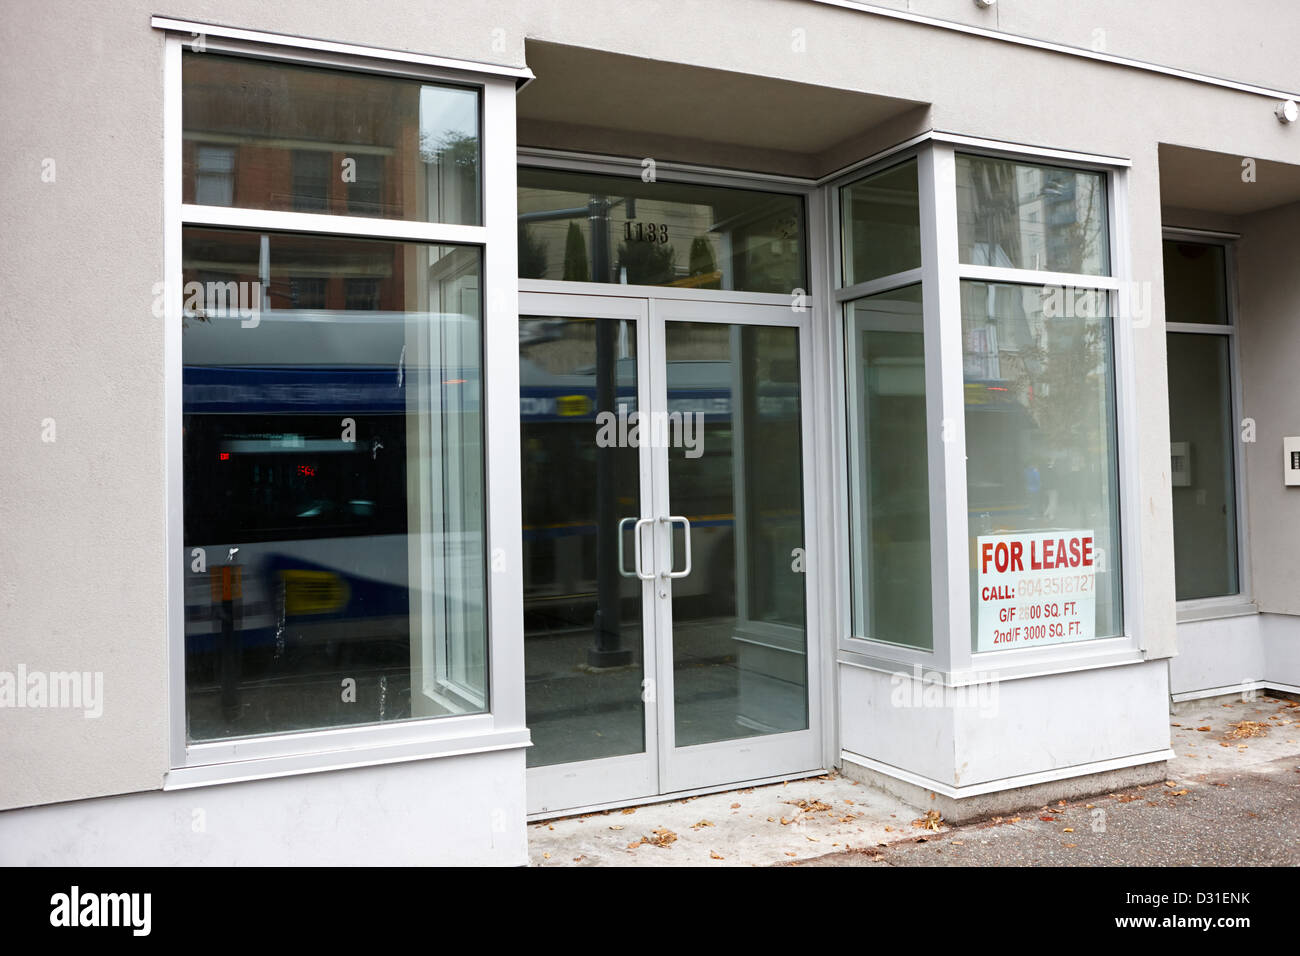 empty downtown store for lease Vancouver BC Canada - Stock Image